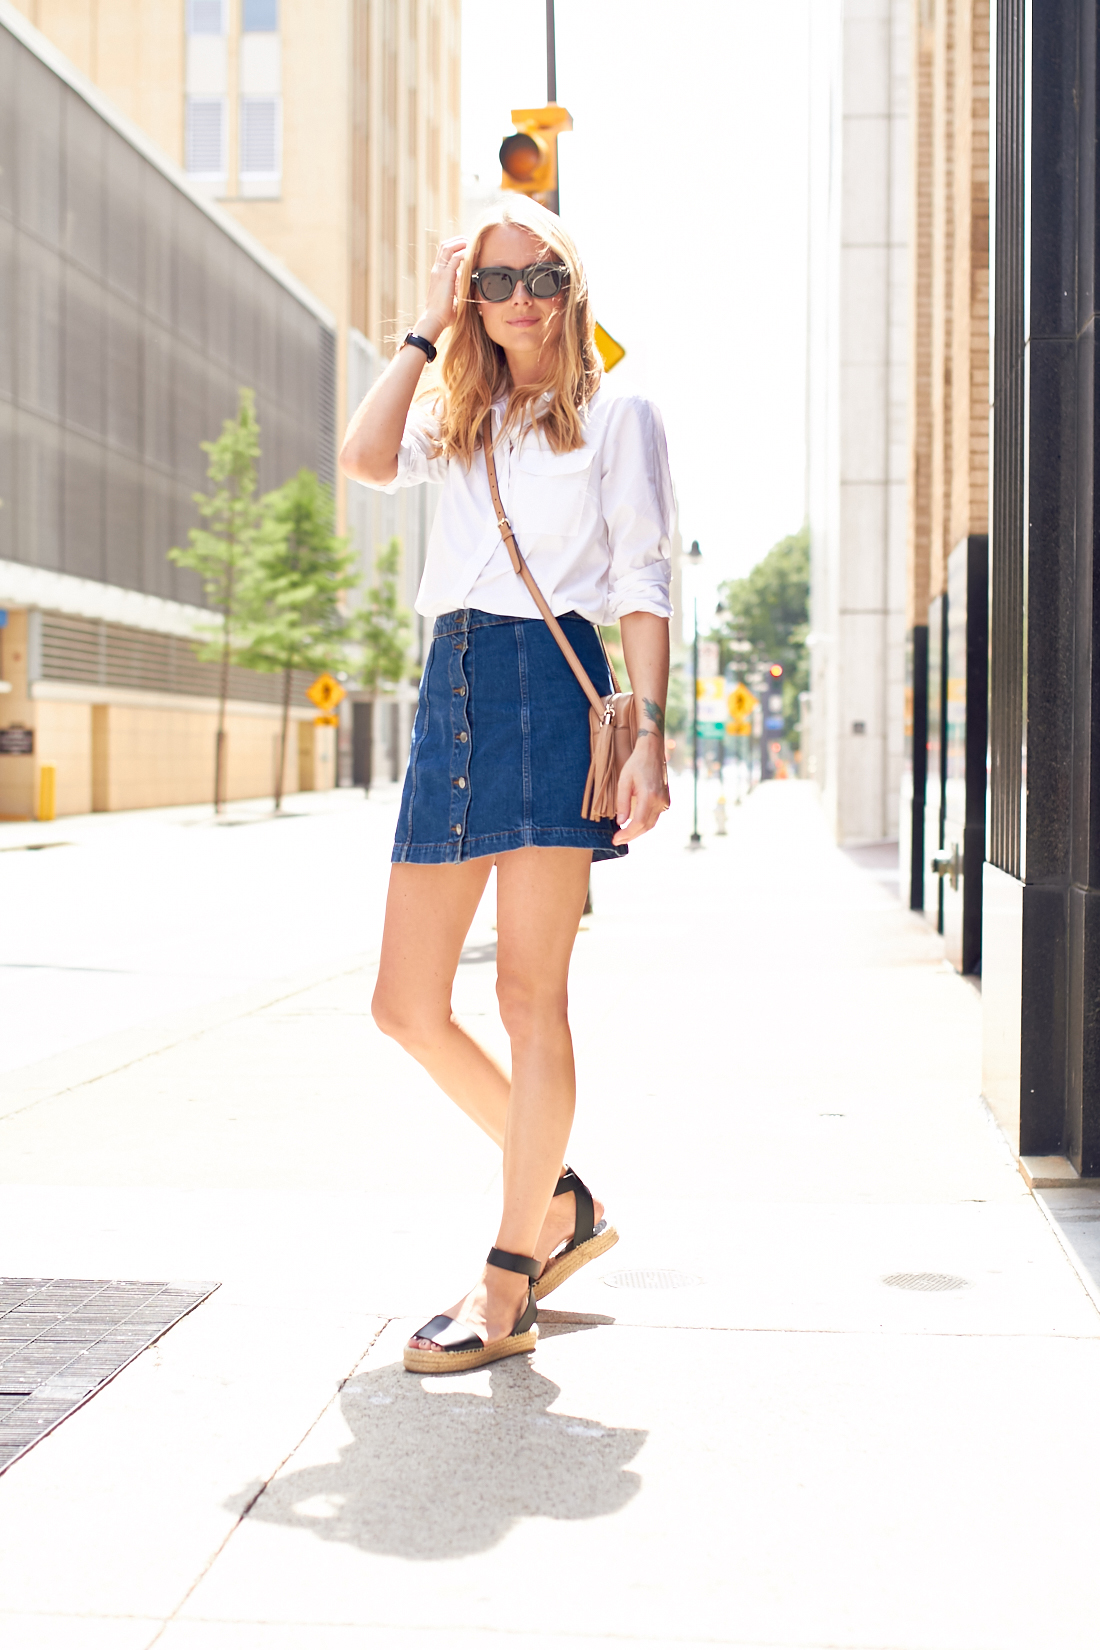 Stretch Denim A-Line Mini Skirt: Asymmetrical Edition $ Top Rated High-Waist Snap Skirt $ Embroidered Drawstring Circle Skirt in Summer Friday $ $ A-Line Zip Skirt $ $ Top Rated Stretch Denim Straight Mini Skirt in Lunar Wash: Step-Hem Edition $